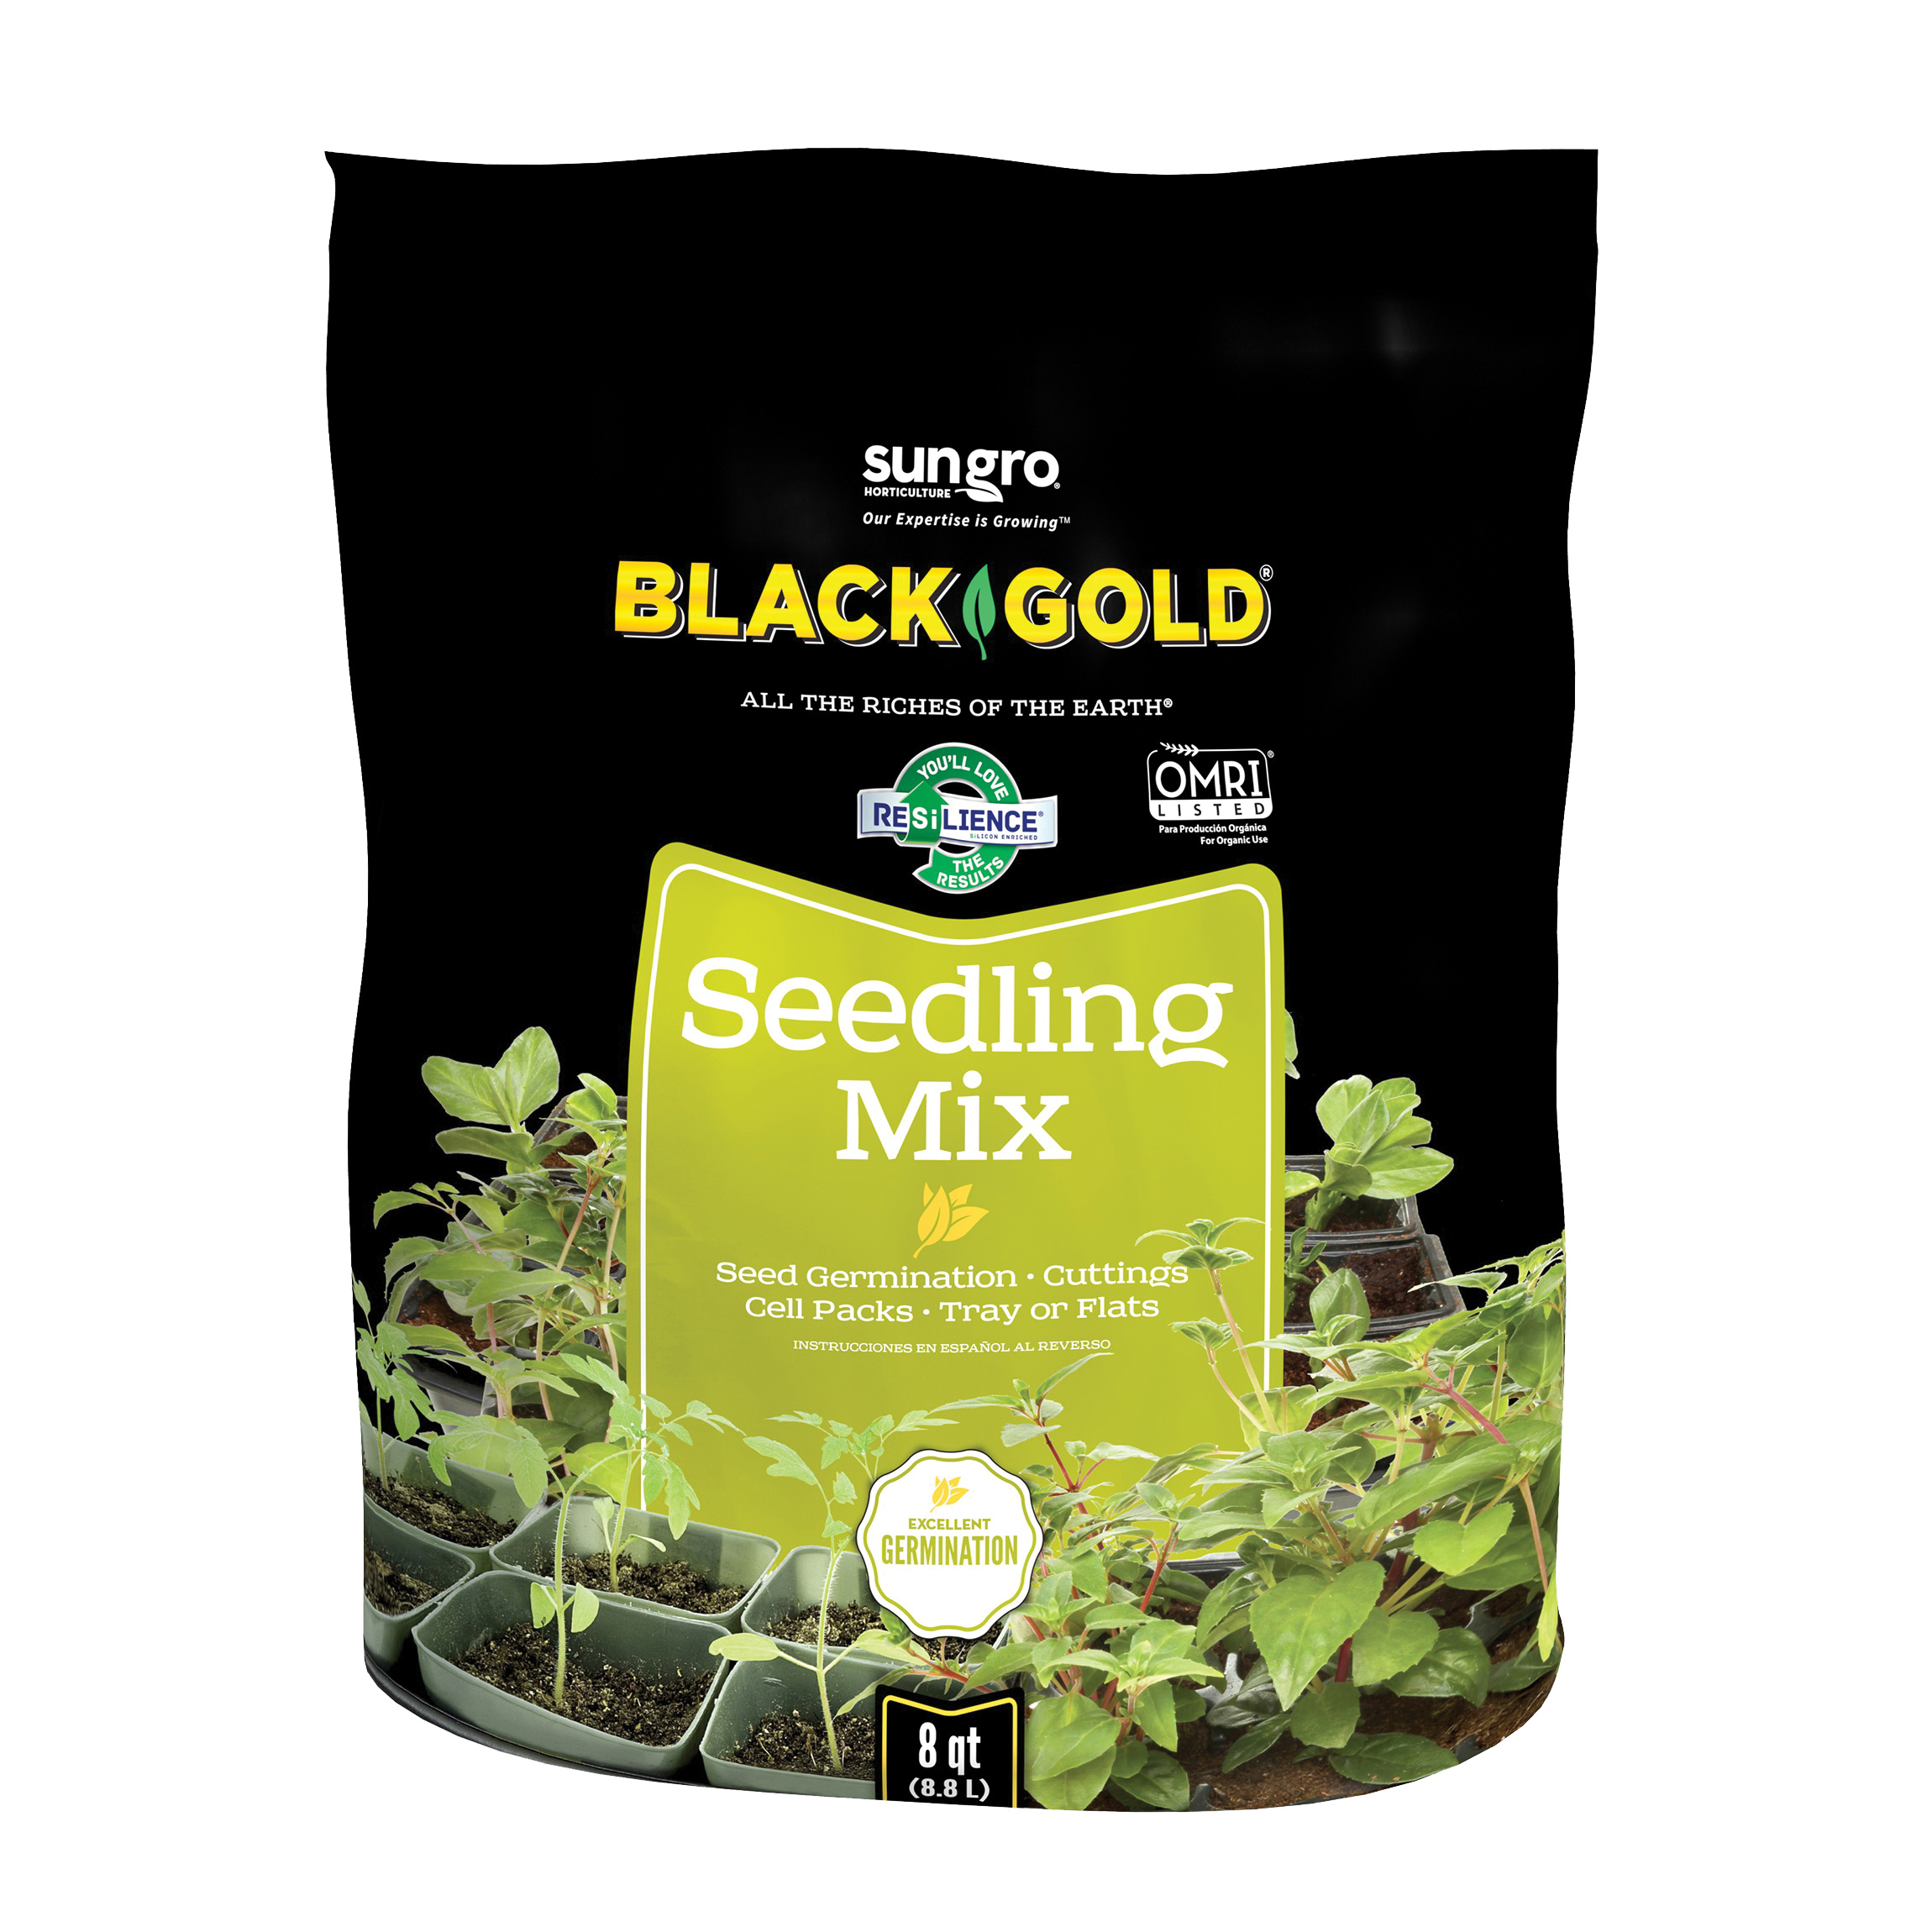 Picture of sun gro BLACK GOLD 1411002 8 QT P Seedling Mix, 8 qt Package, Bag